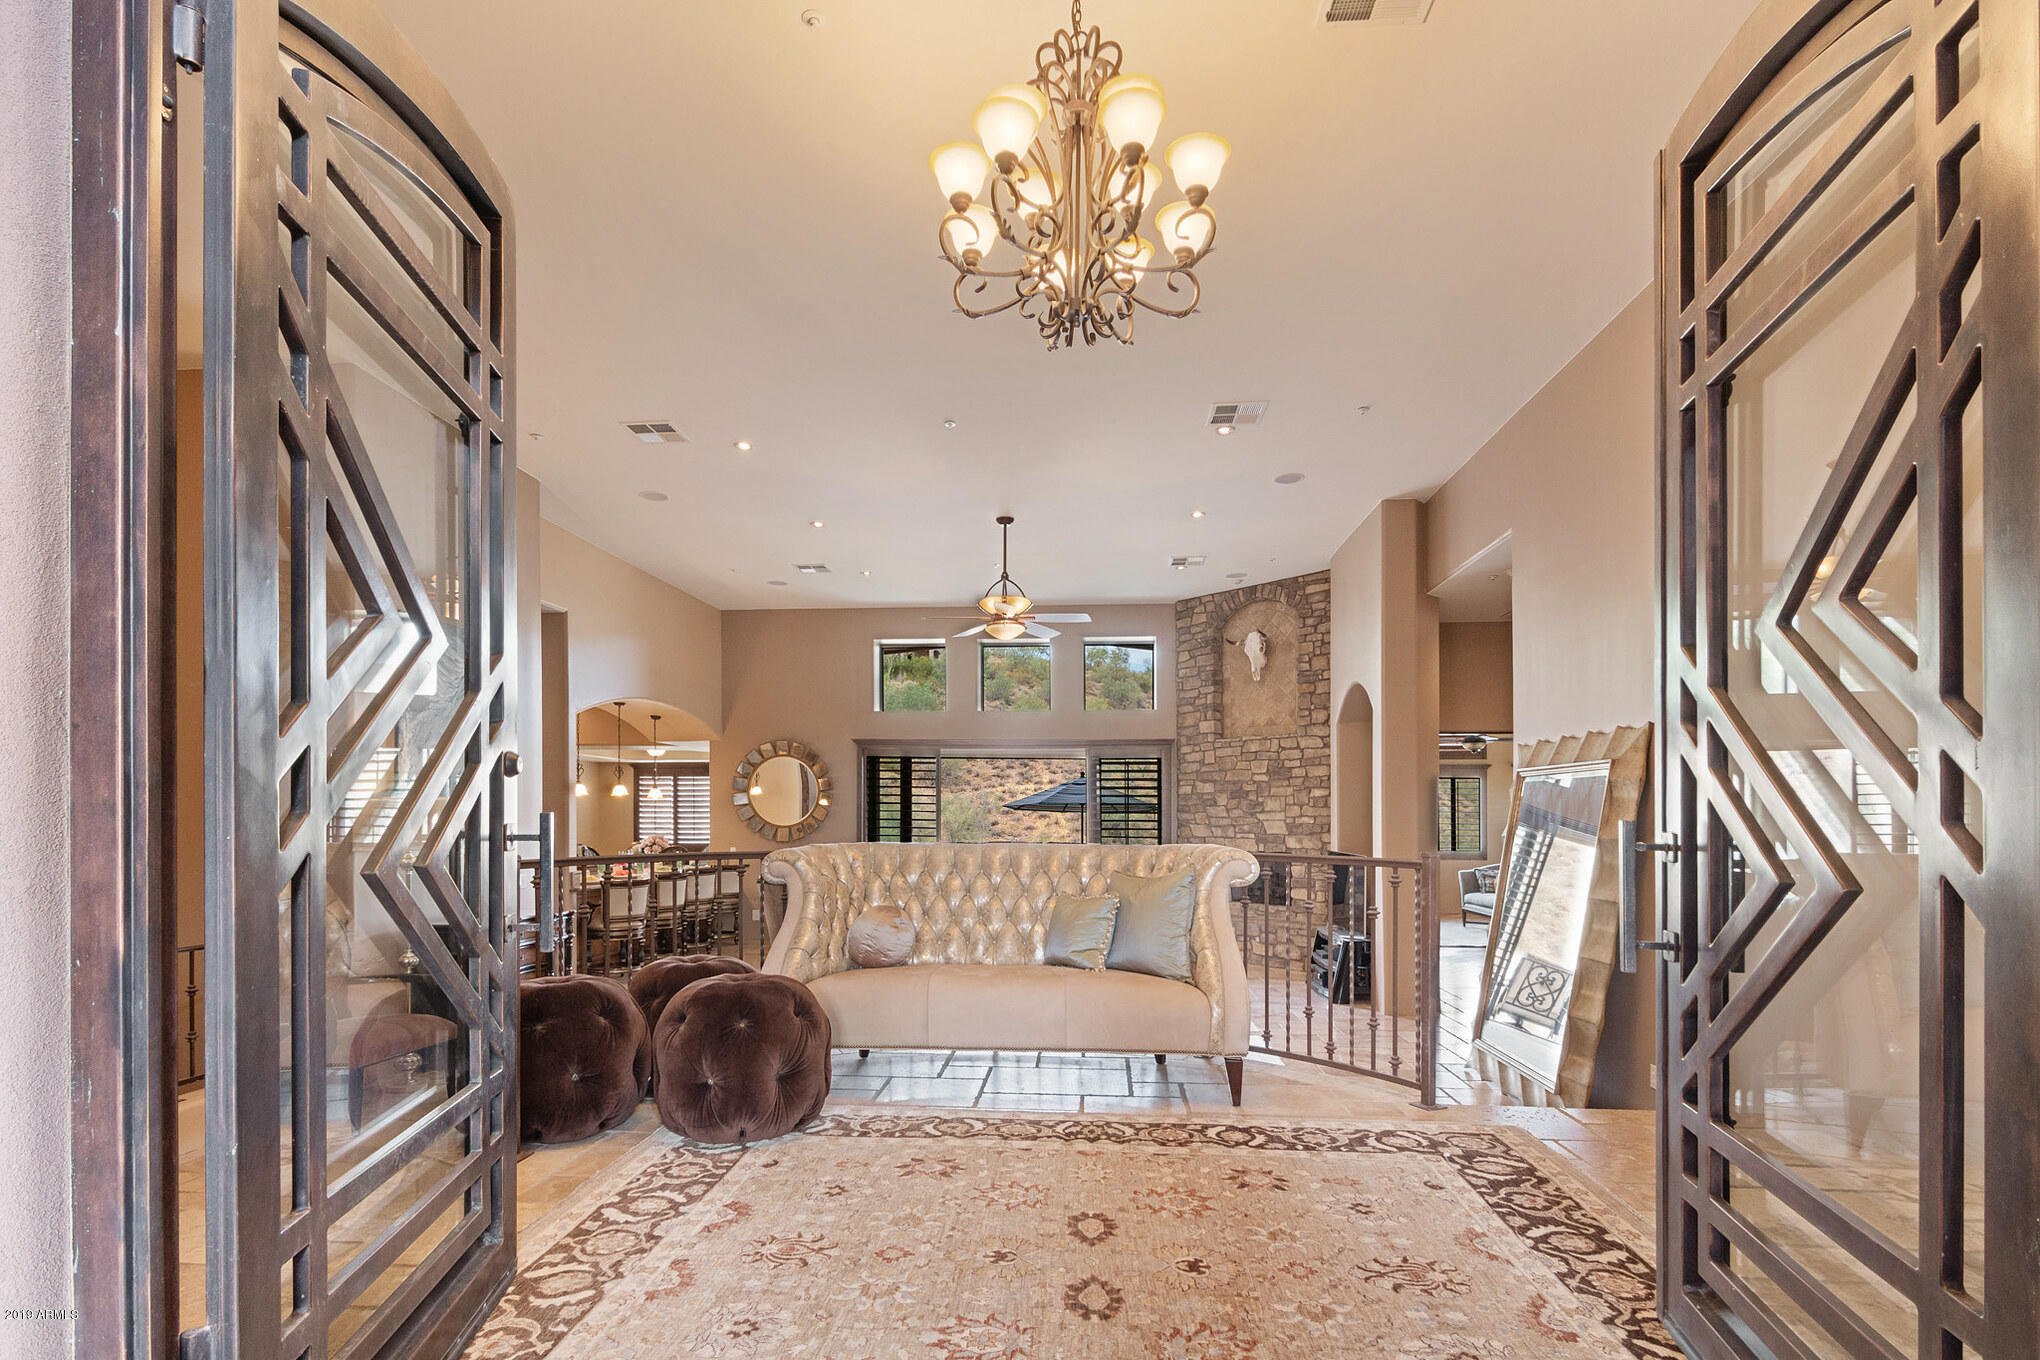 One of Fountain Hills 5 Bedroom Homes for Sale at 9749 N Fireridge Trail